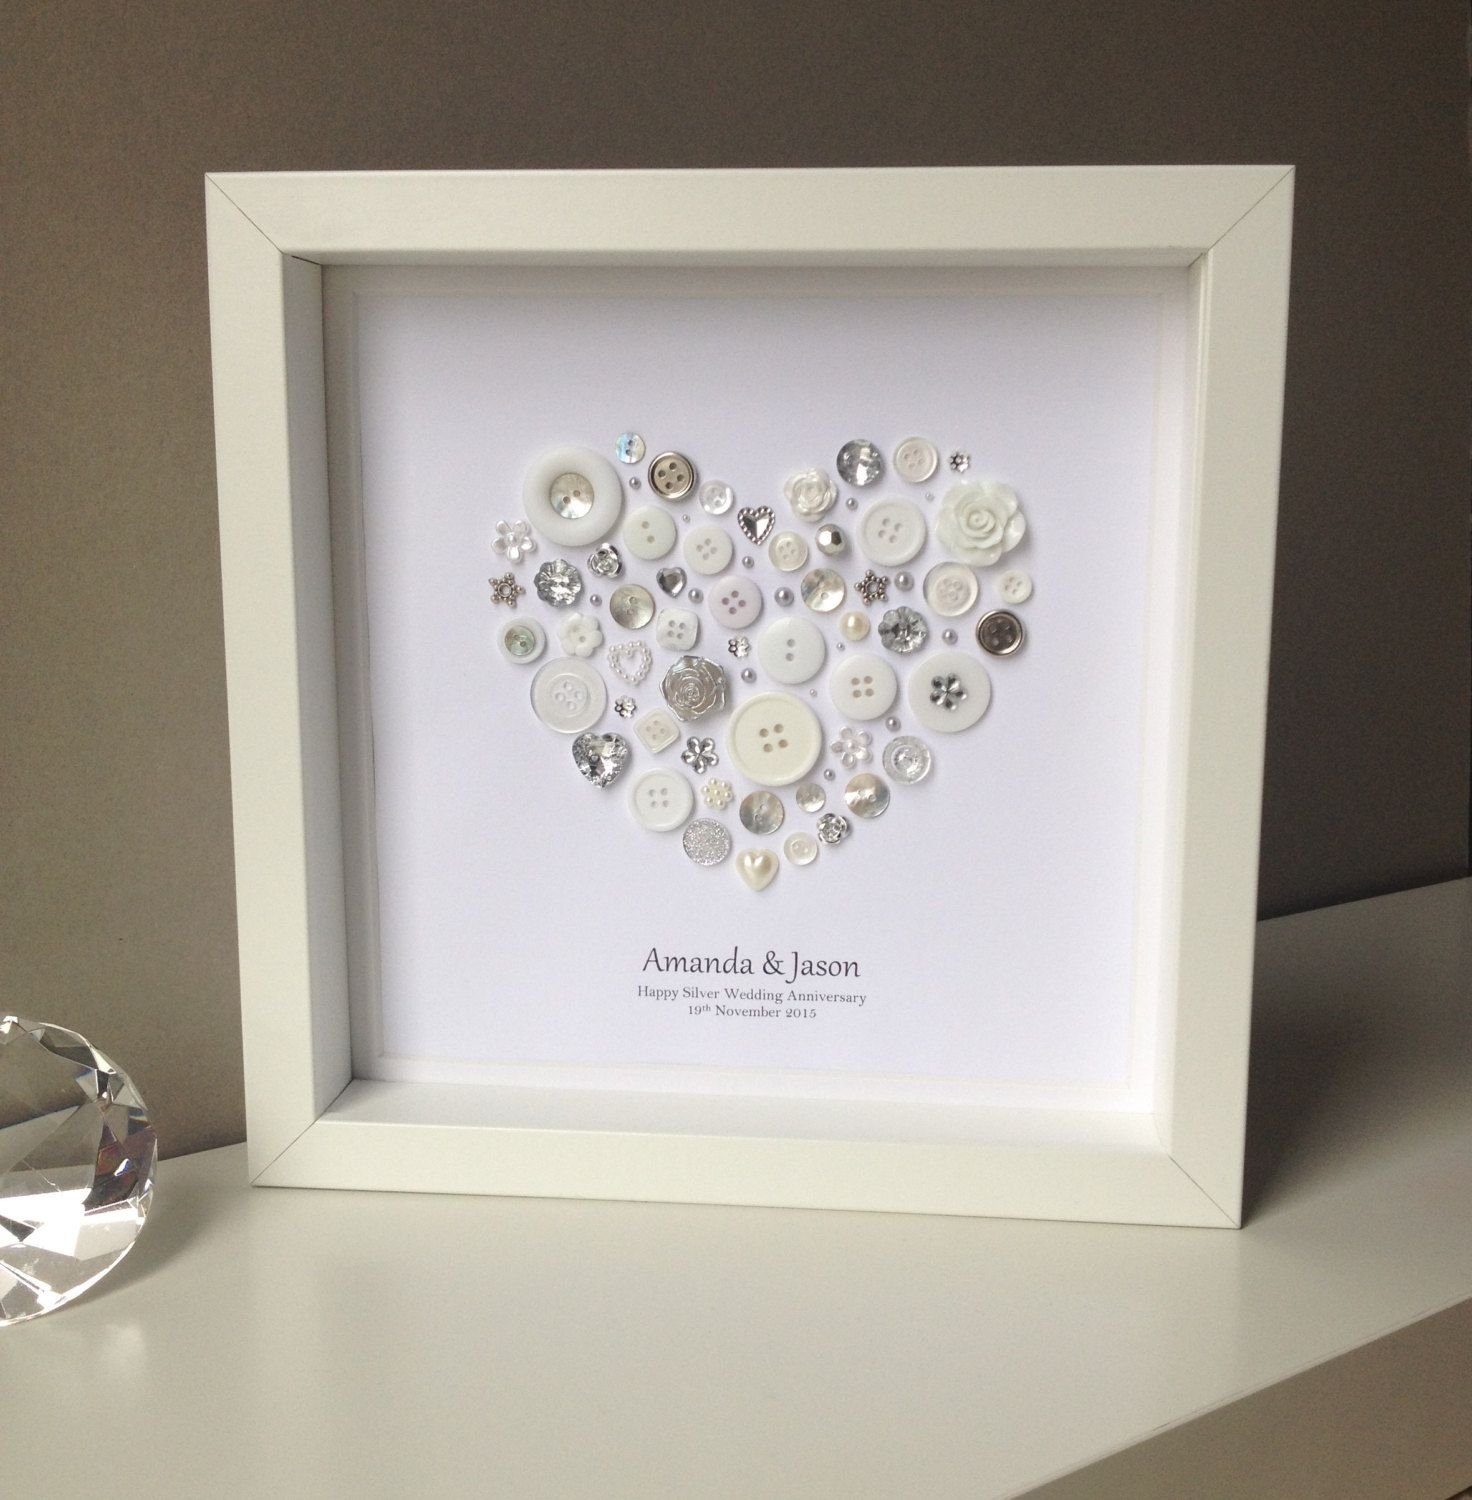 25th Wedding Anniversary Gift Ideas Your Husband: Silver Anniversary Gift 25th Wedding By ButtonArtbySophie